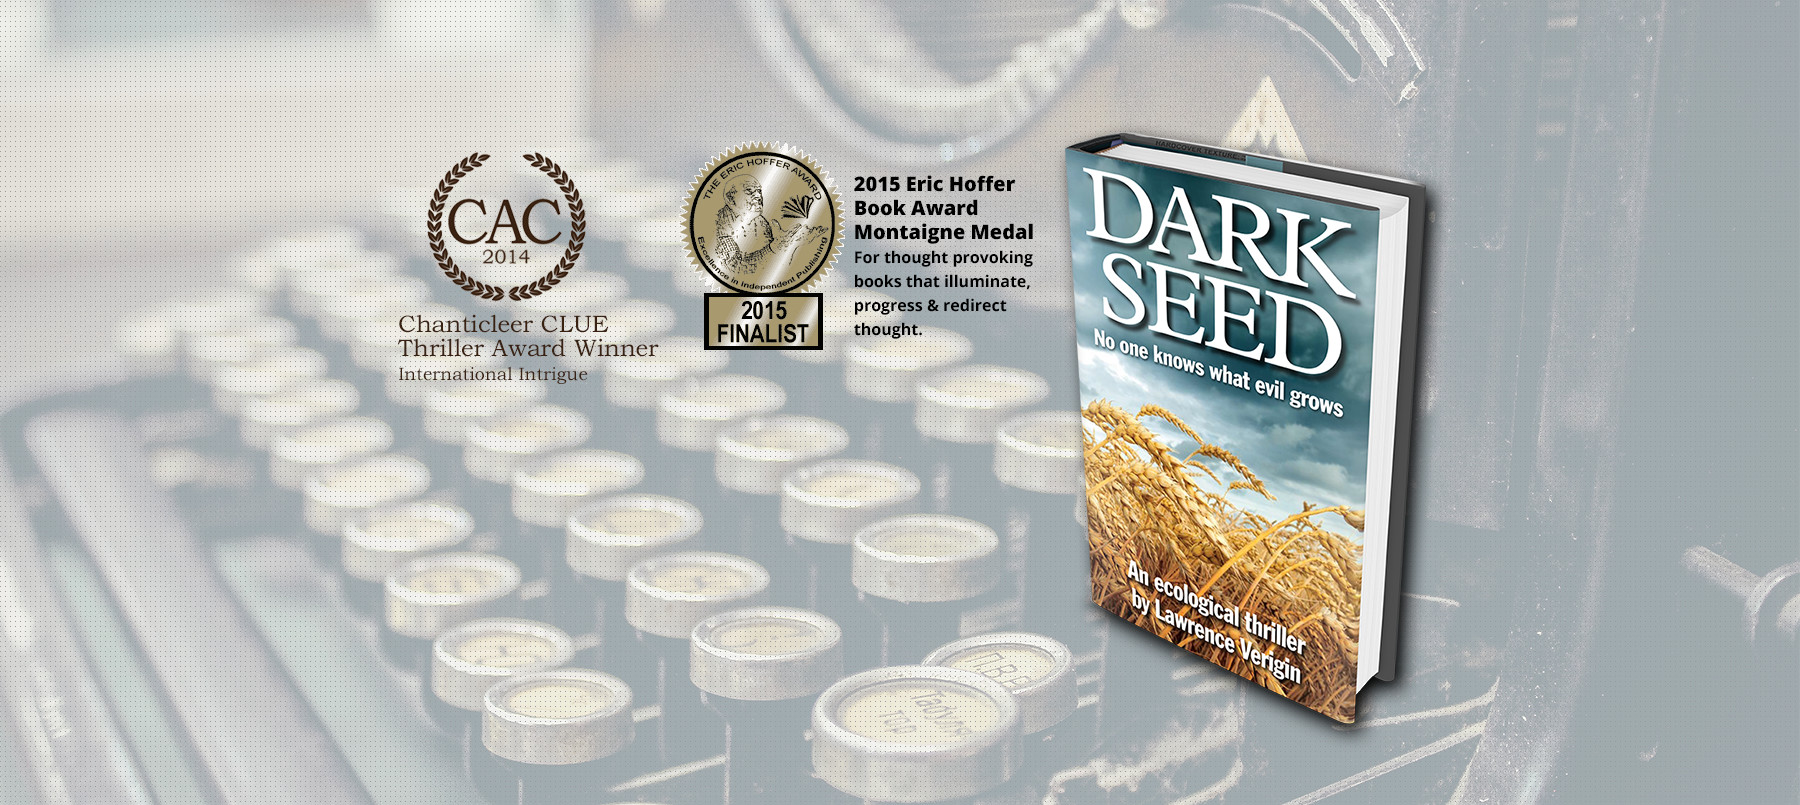 Lawrence Verigin - author of Dark Seed